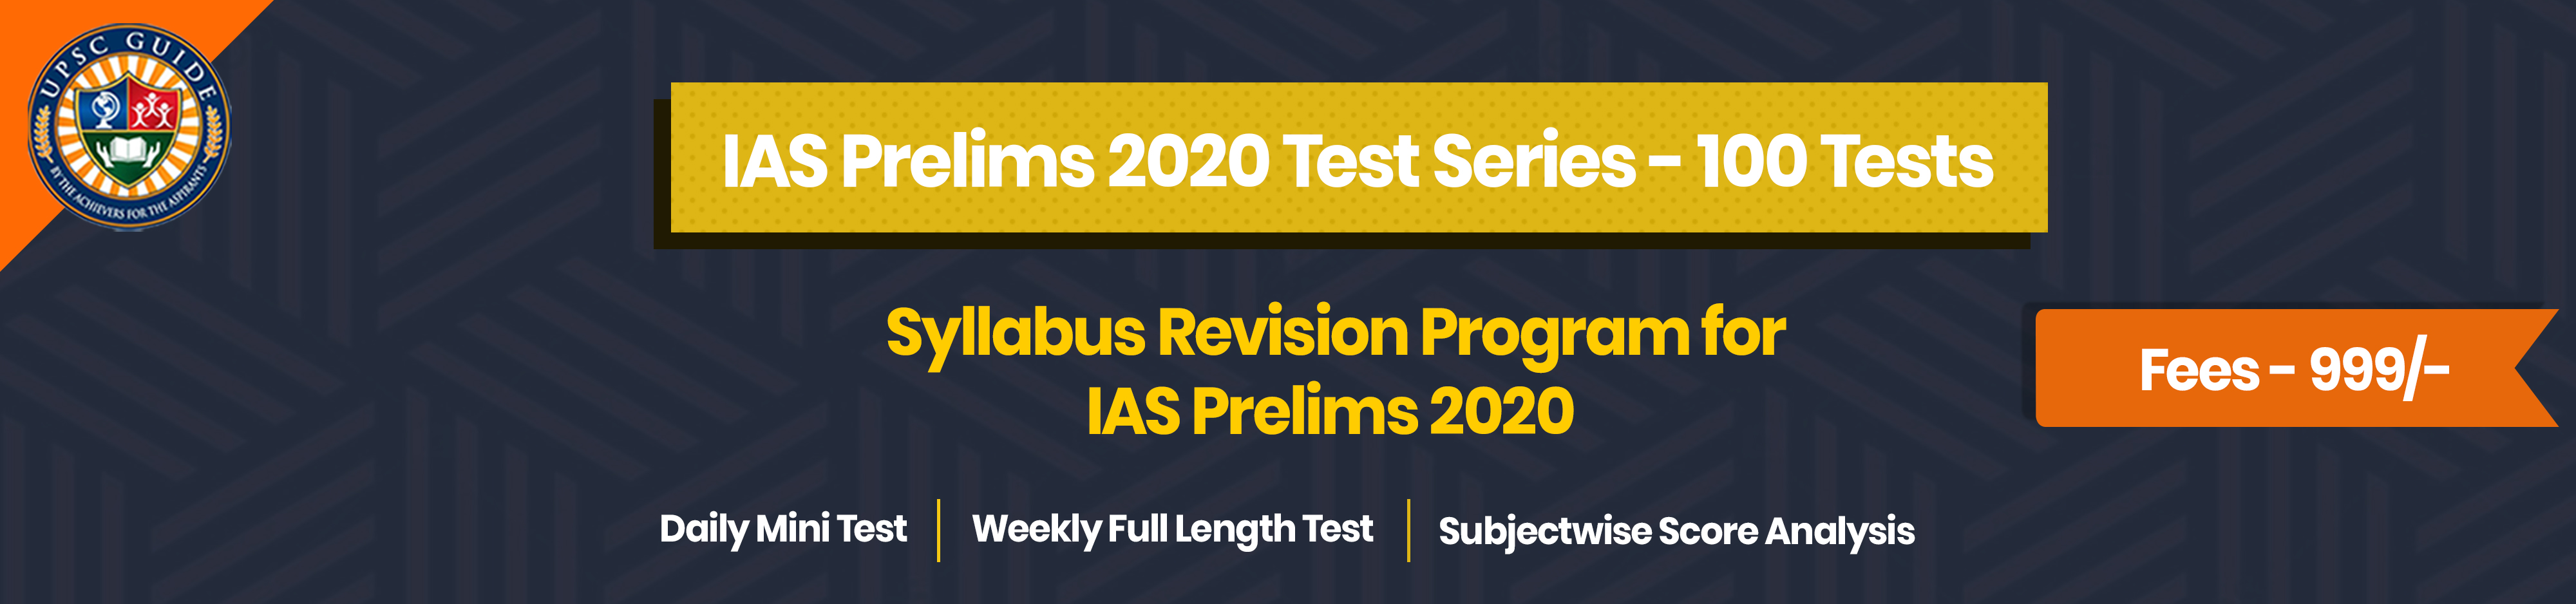 IAS Prelims 2020 Test Series - 100 Tests banner